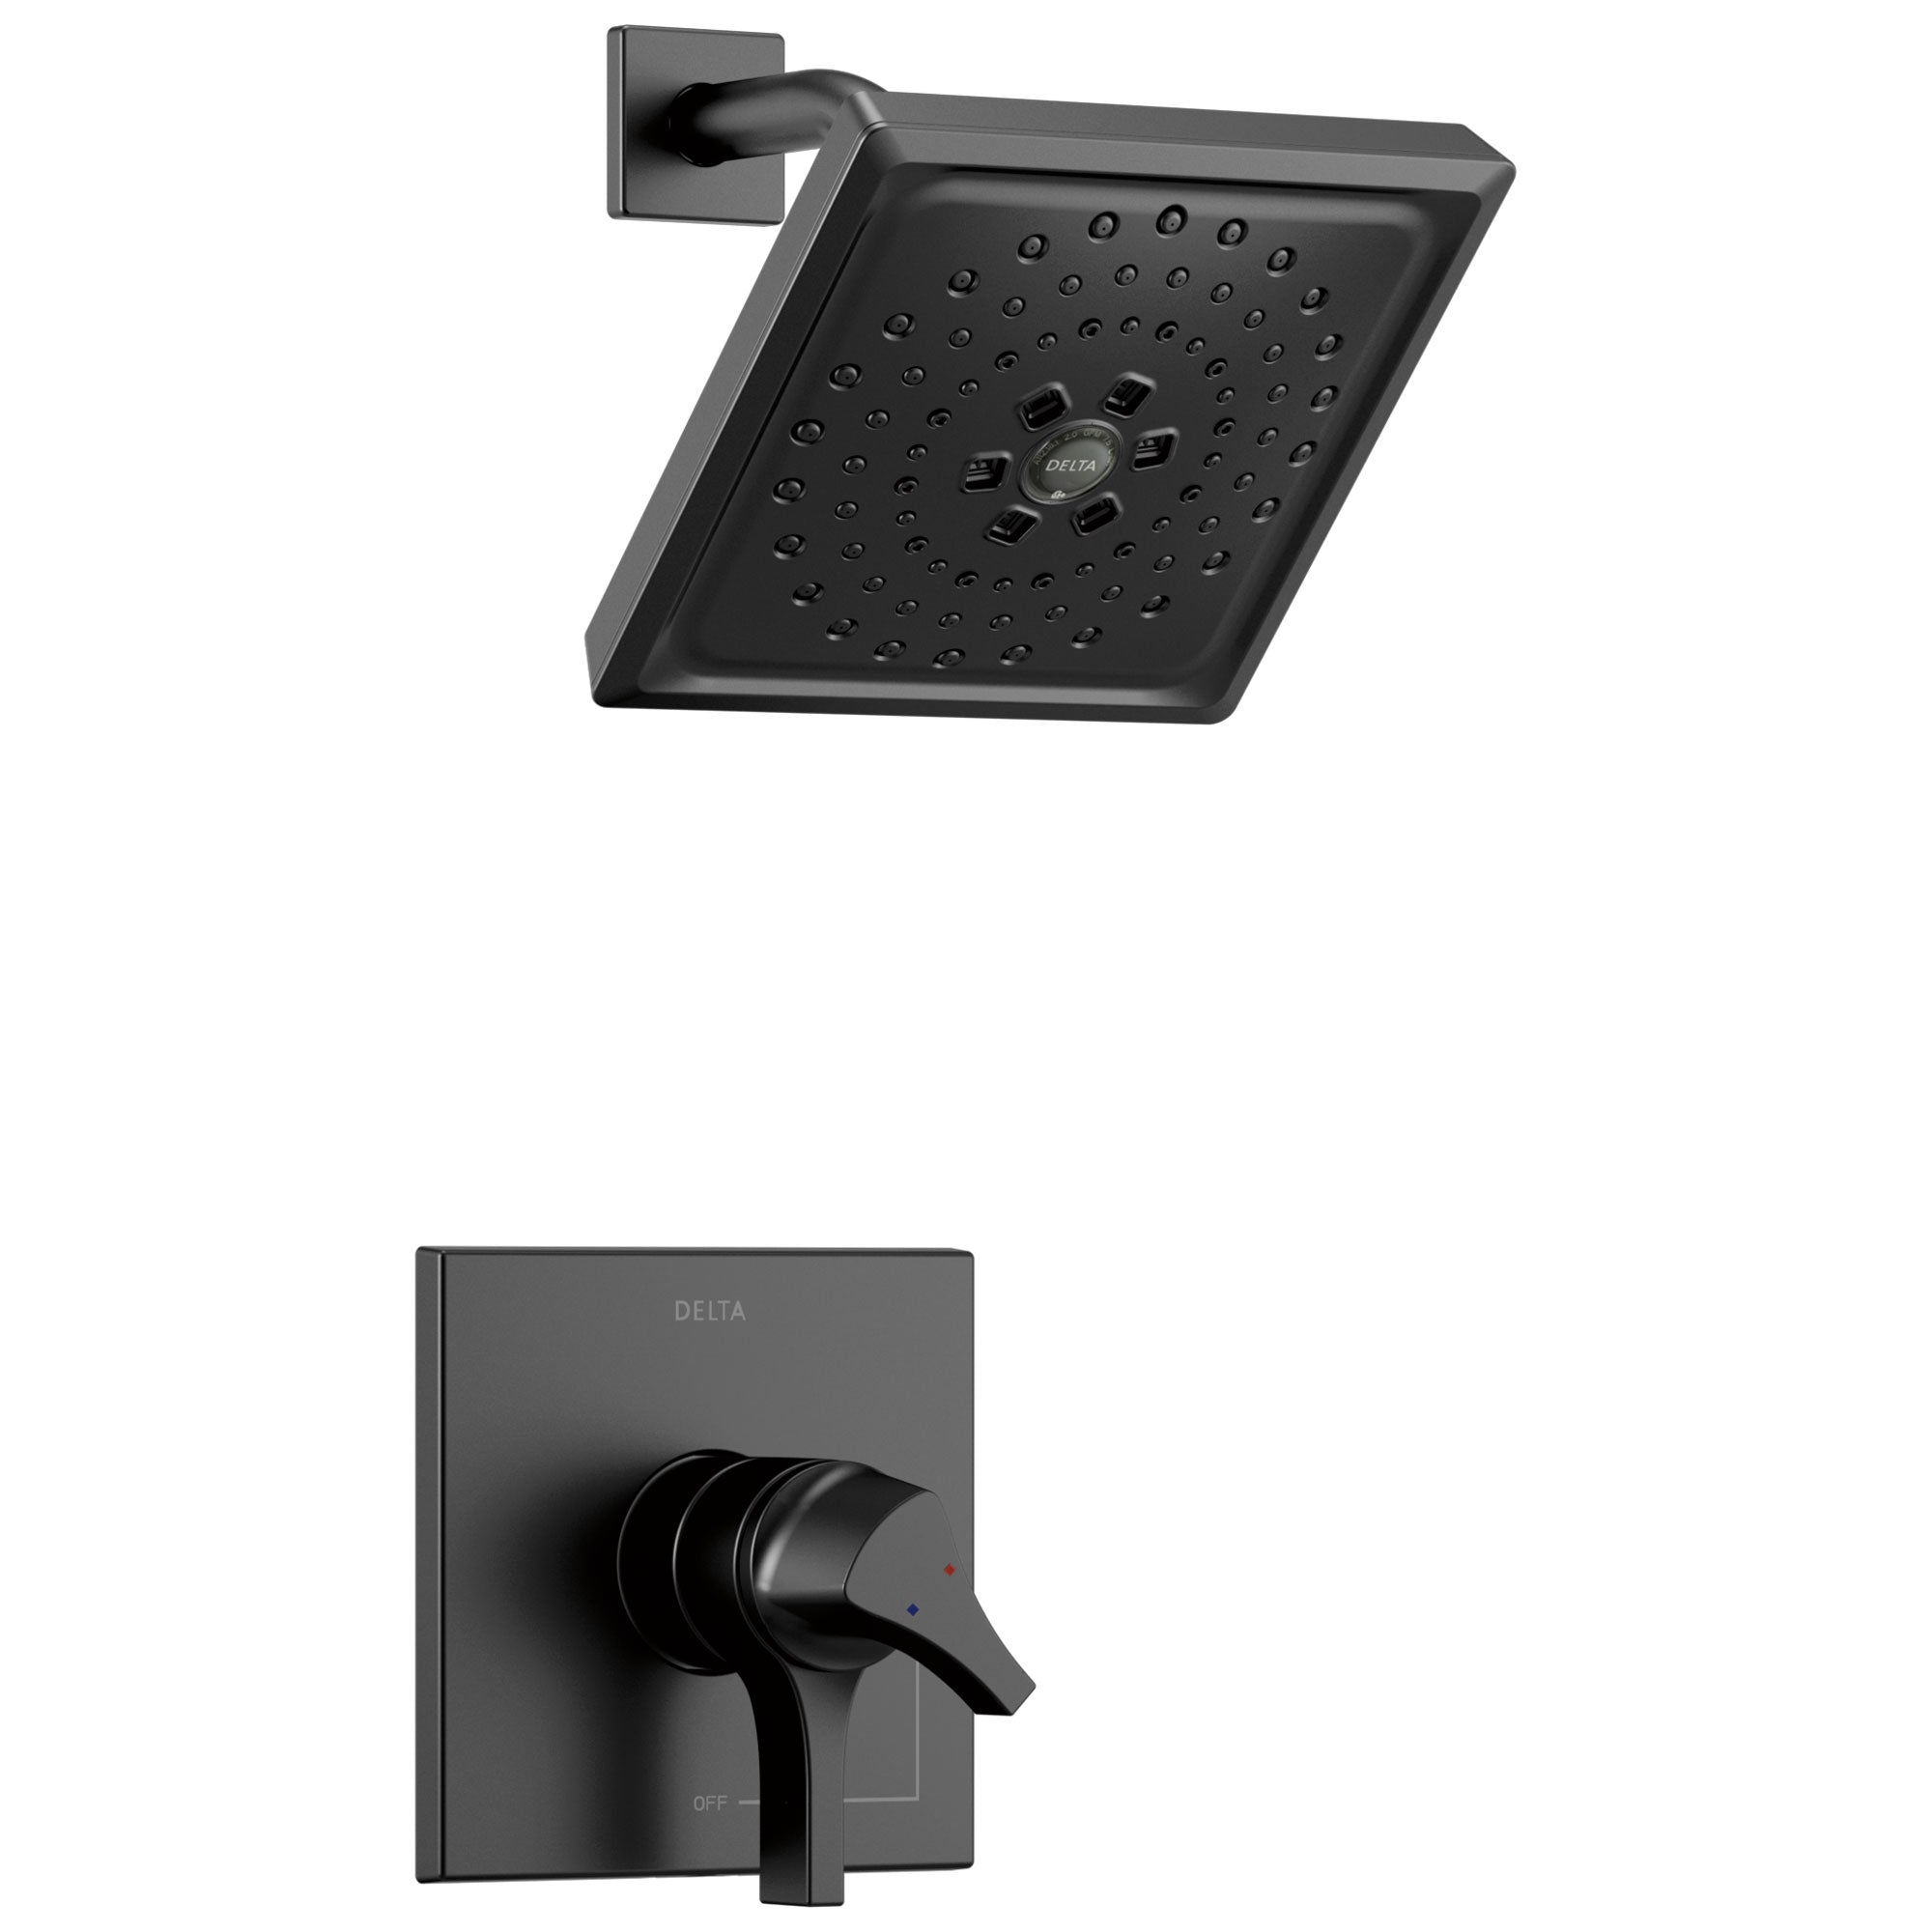 Delta Zura Matte Black Finish Monitor 17 Series H2Okinetic Shower Only Faucet with Handles, Cartridge, and Valve with Stops D3374V